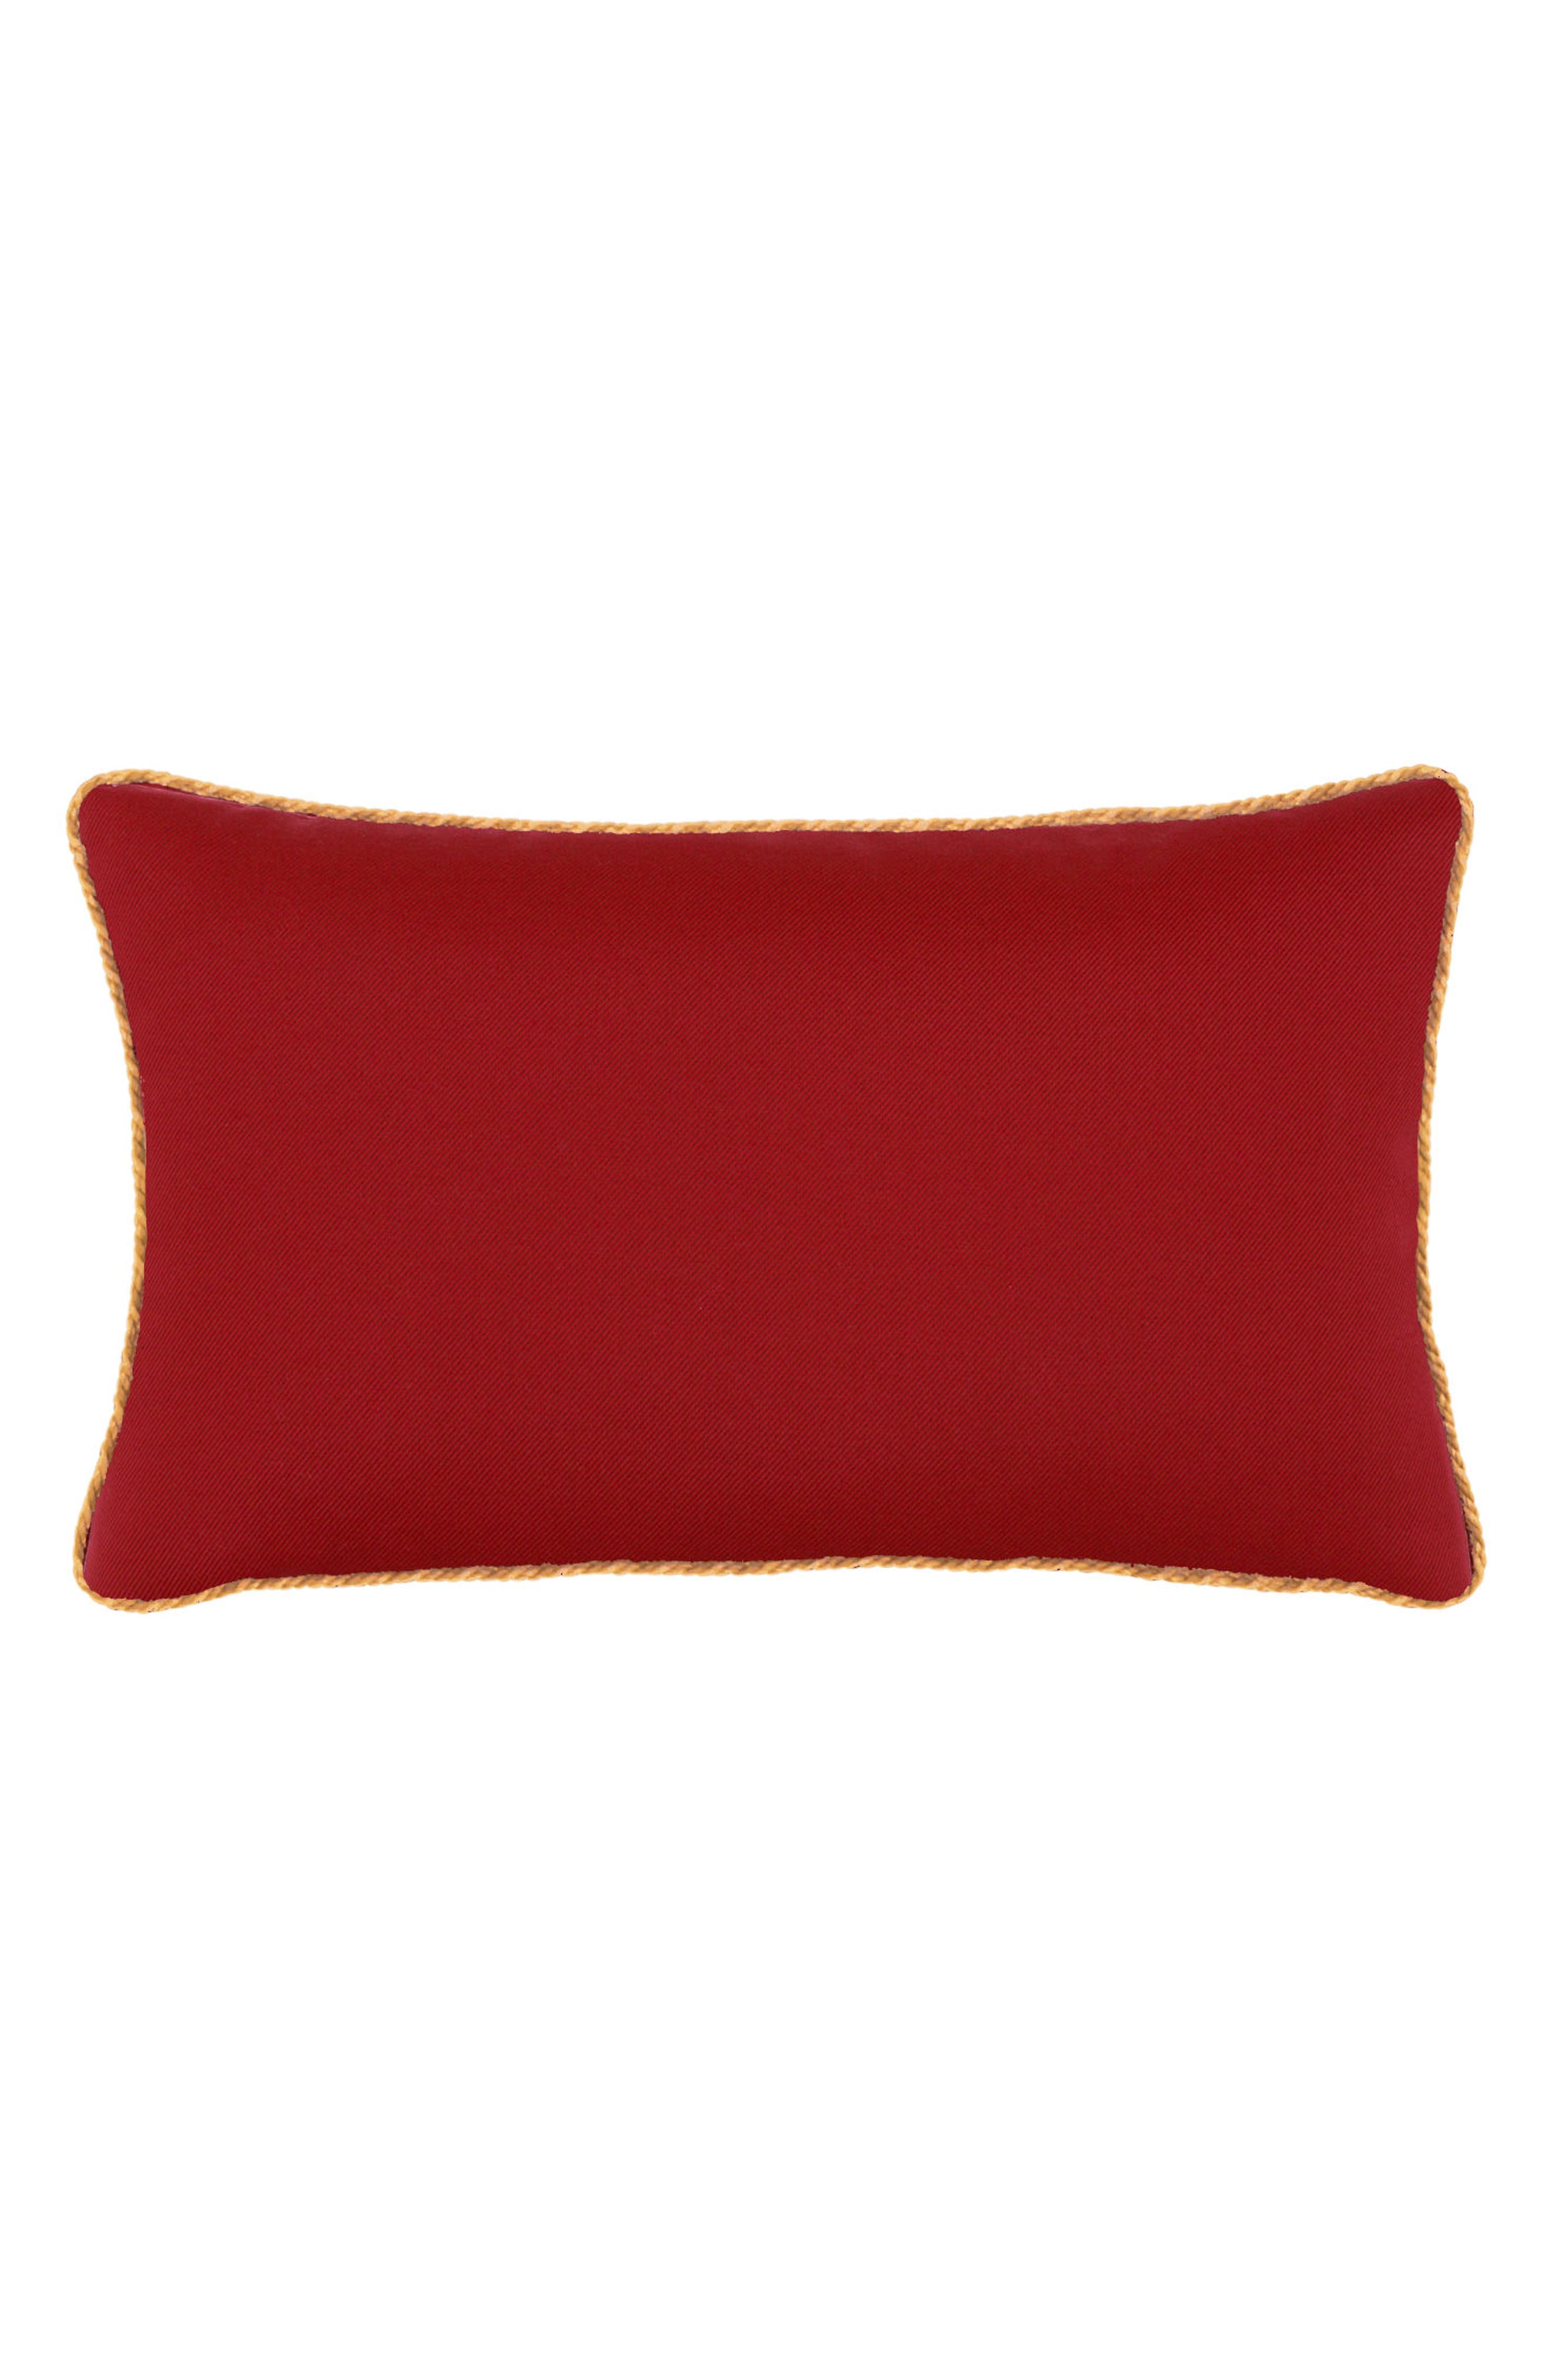 Suzani Sun Lumbar Pillow,                             Alternate thumbnail 2, color,                             600